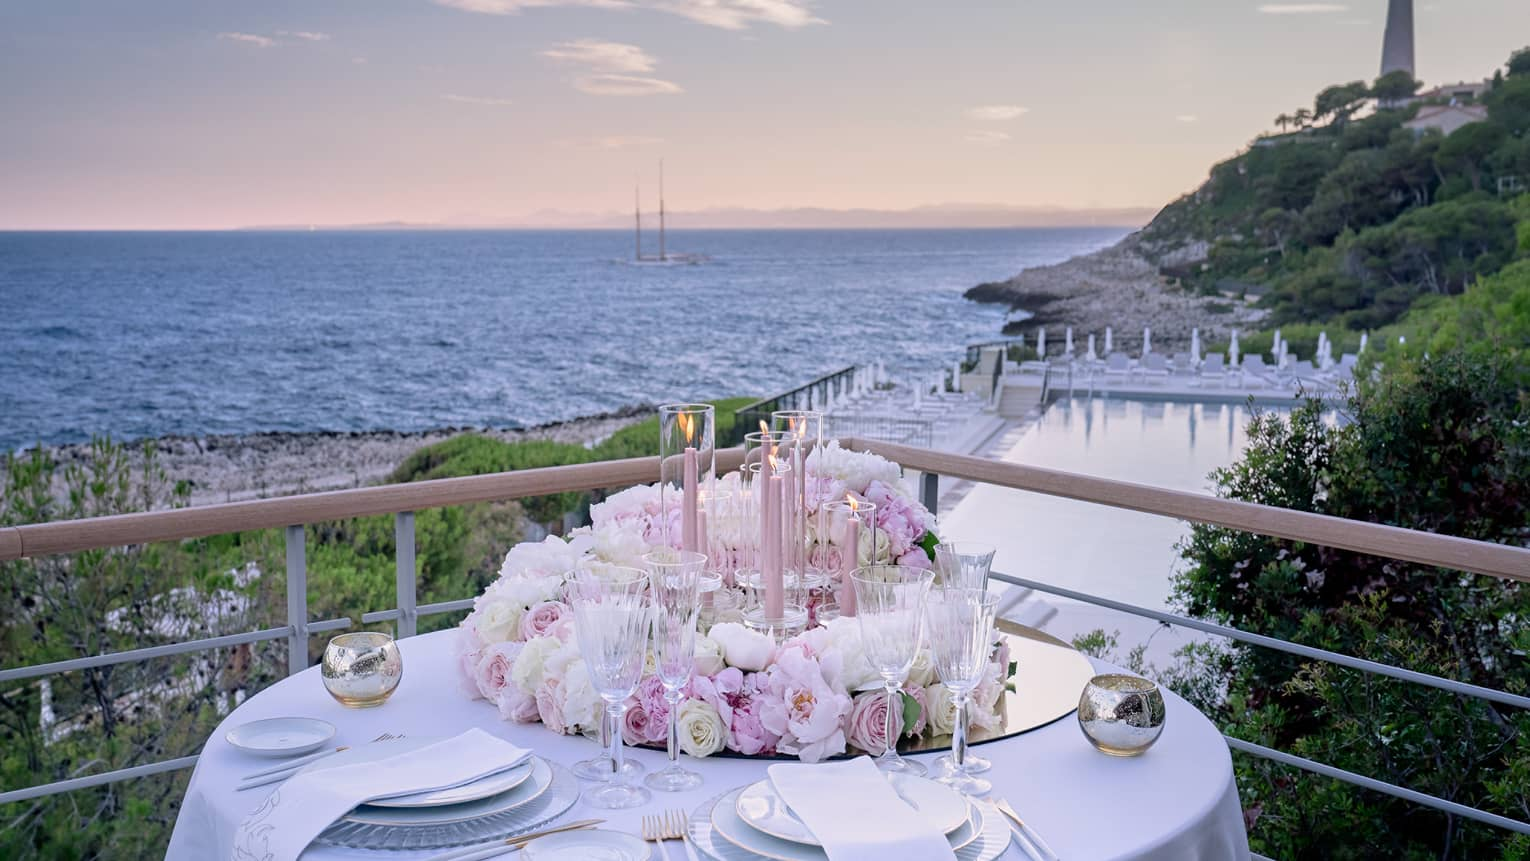 Balcony with round set table, pink floral arrangement, water views at sunset